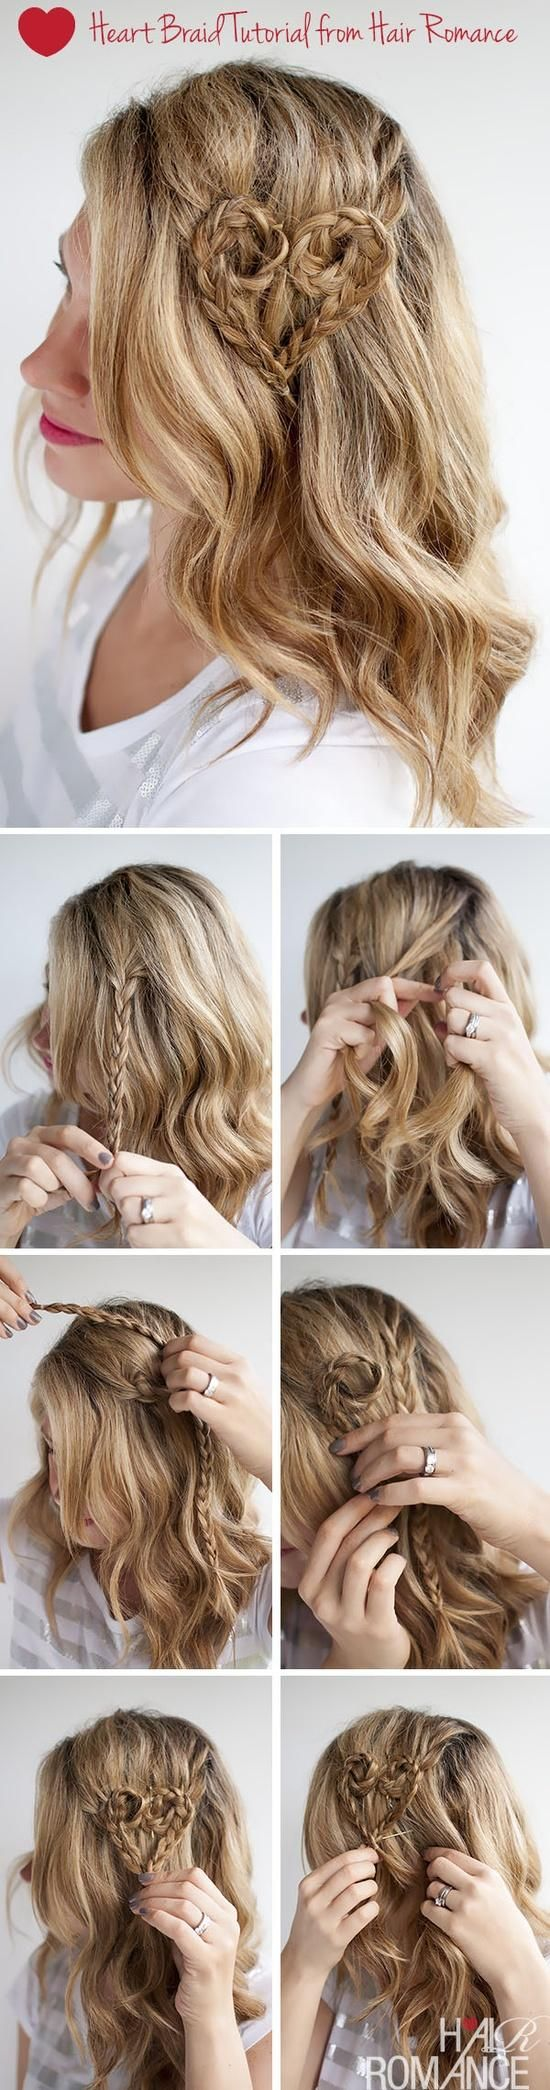 Nattha Pinsuwan: Valentine's Hair - Heart Braid Tutorial from Hair Romance #Lockerz